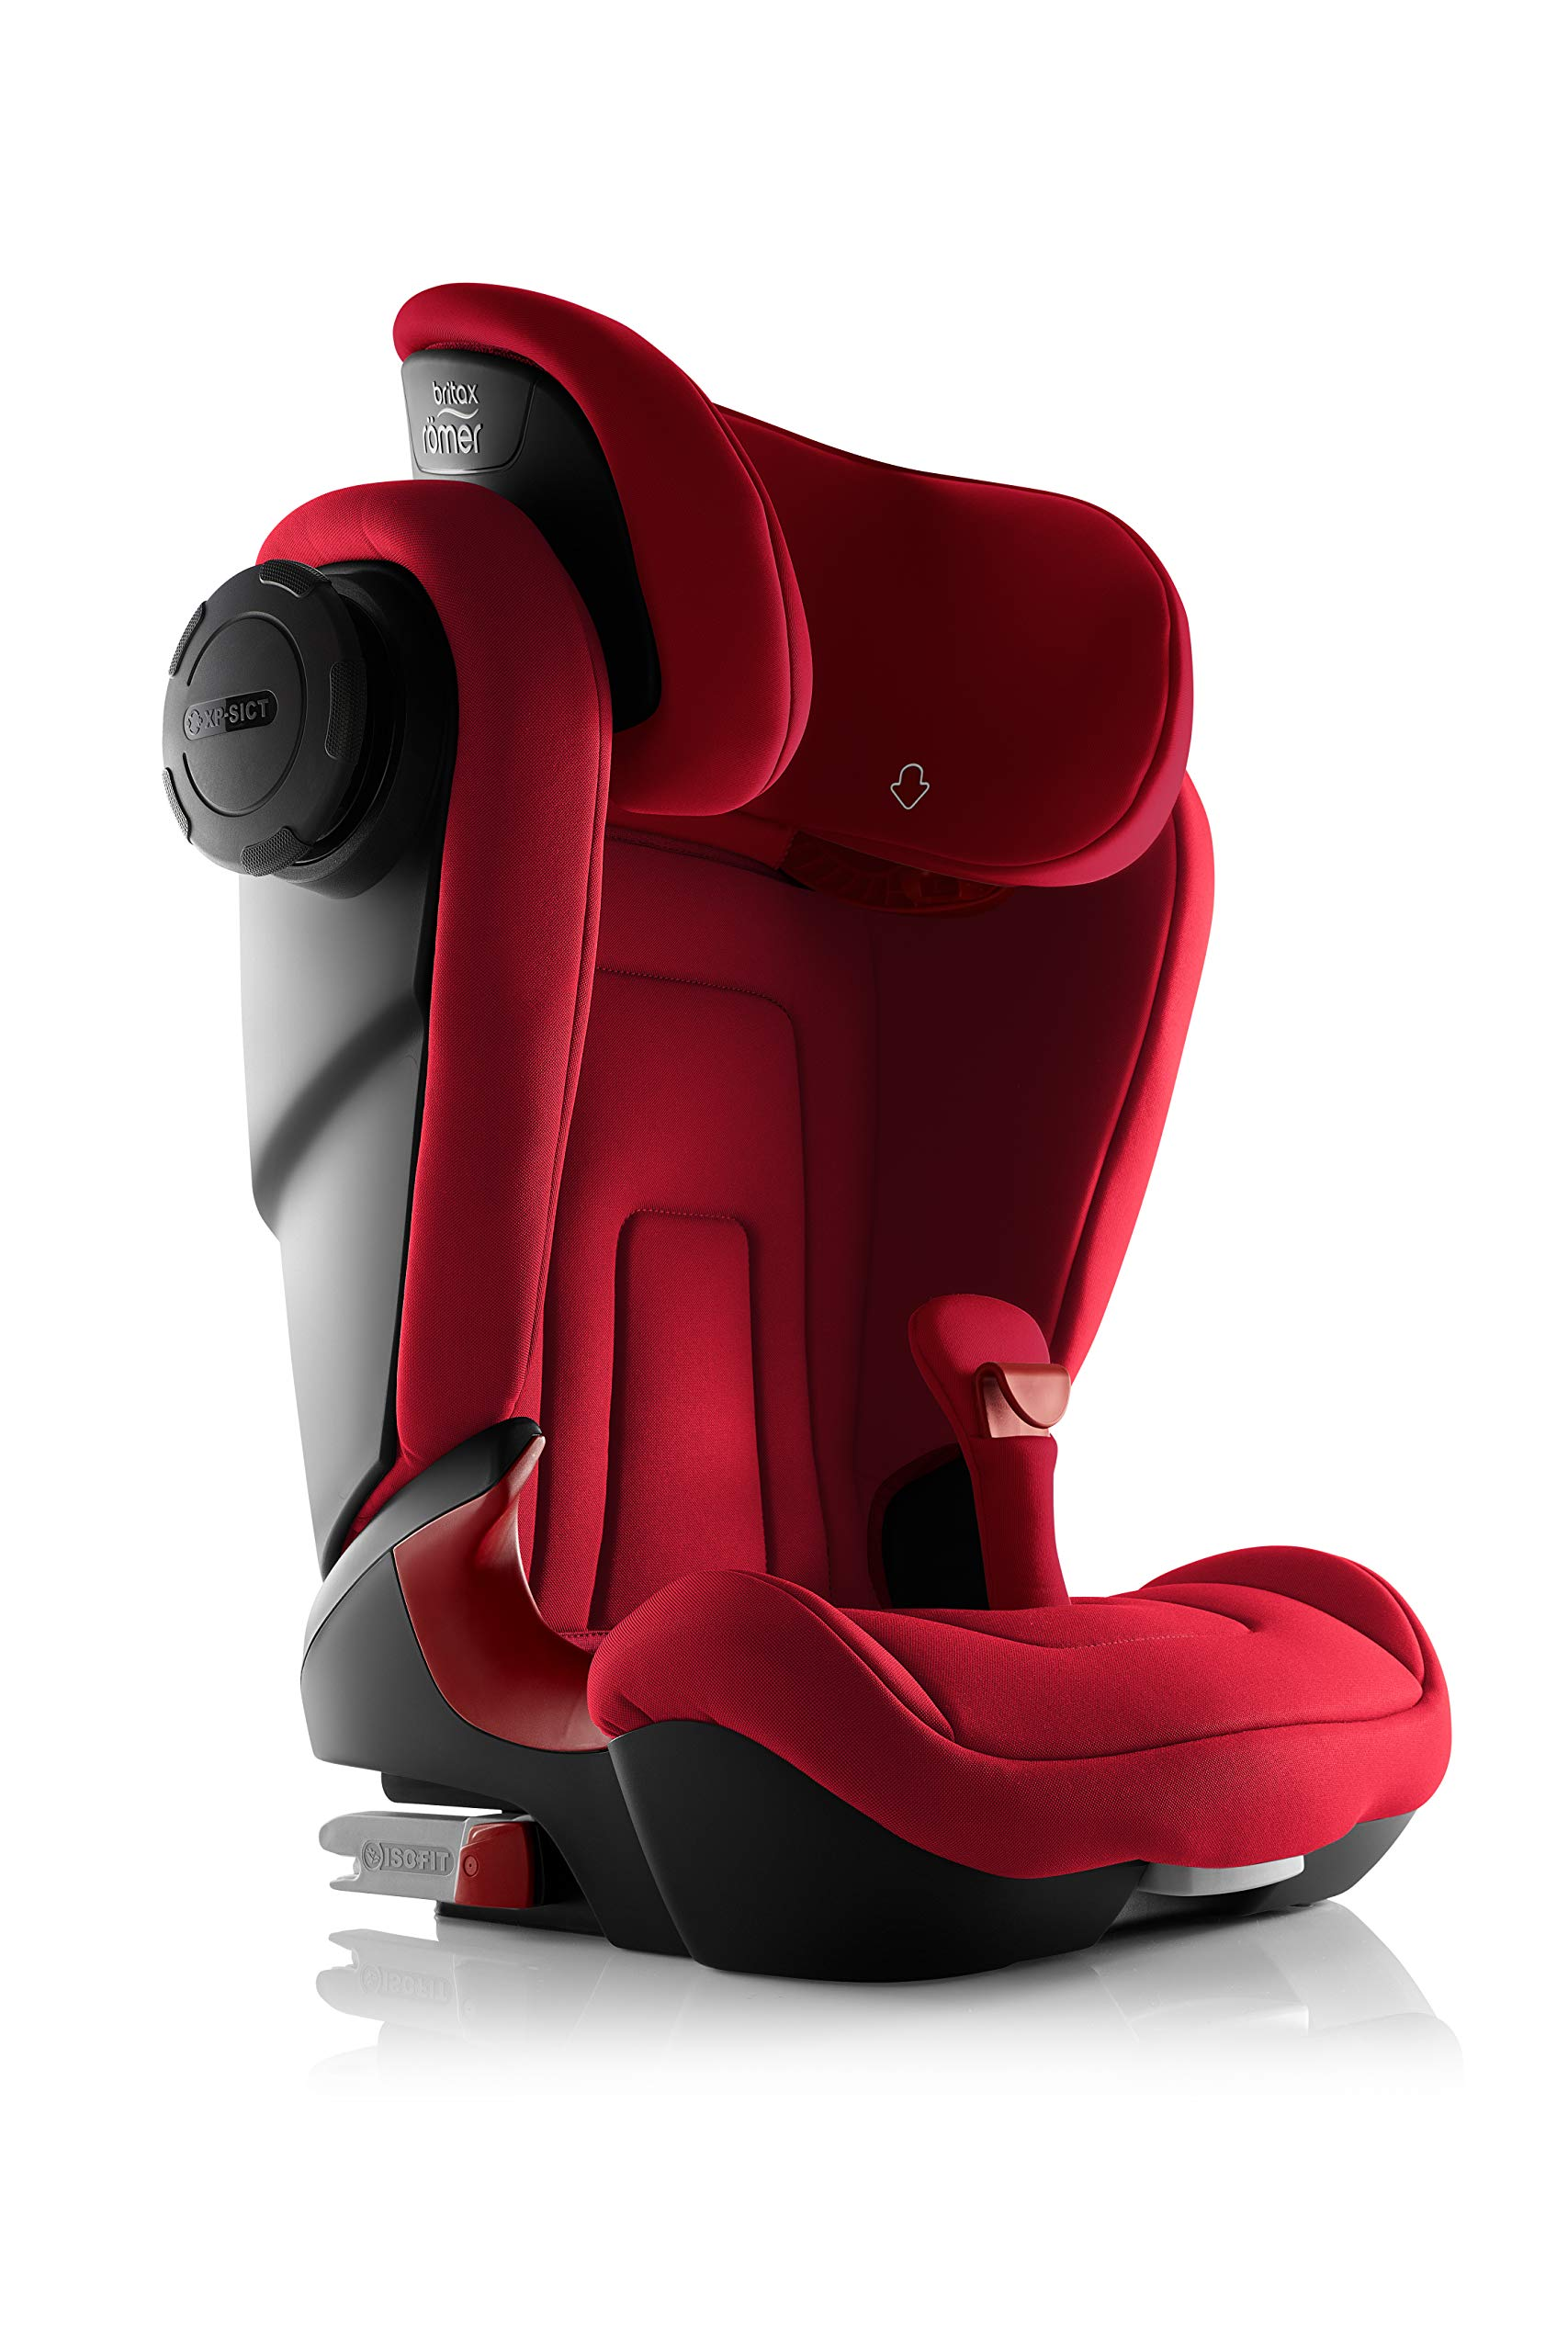 Britax Römer KIDFIX² S Group 2-3 (15-36kg) Car Seat - Fire Red Britax Römer Advanced side impact protection - sict offers superior protection to your child in the event of a side collision. reducing impact forces by minimising the distance between the car and the car seat. Secure guard - helps to protect your child's delicate abdominal area by adding an extra - a 4th - contact point to the 3-point seat belt. High back booster - protects your child in 3 ways: provides head to hip protection; belt guides provide correct positioning of the seat belt and the padded headrest provides safety and comfort. 4